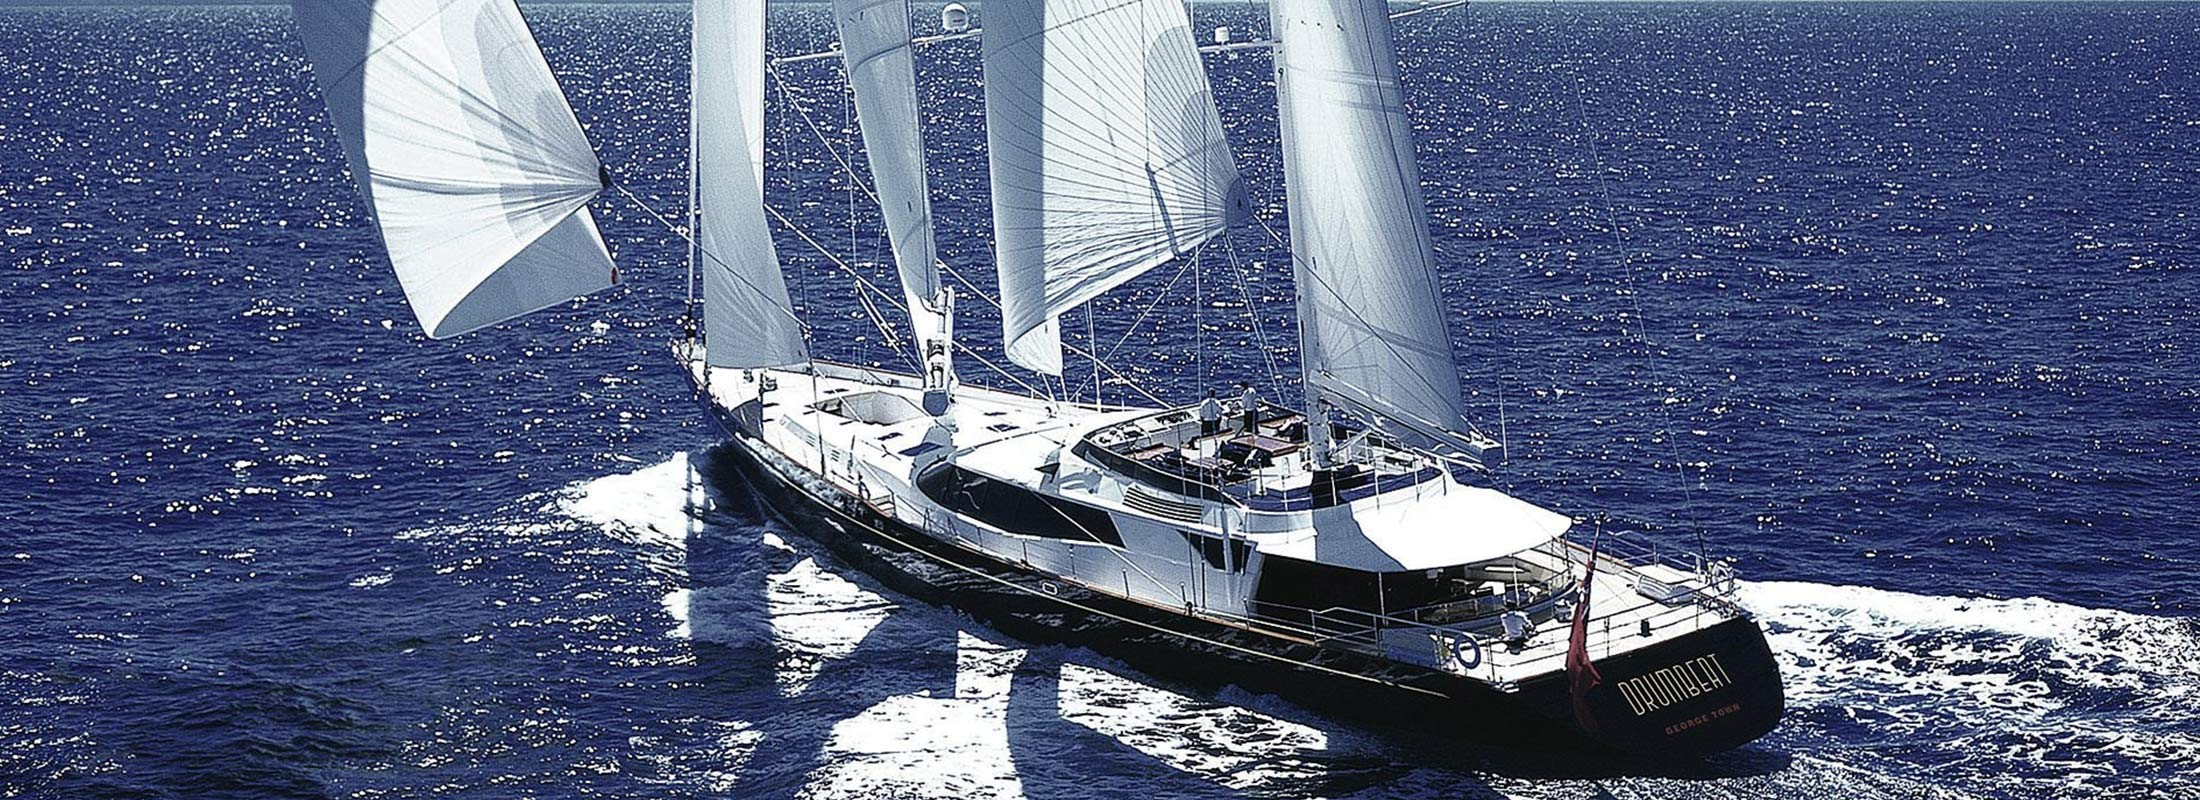 Drumbeat Sailing Yacht for Charter Norway Arctic slider 2